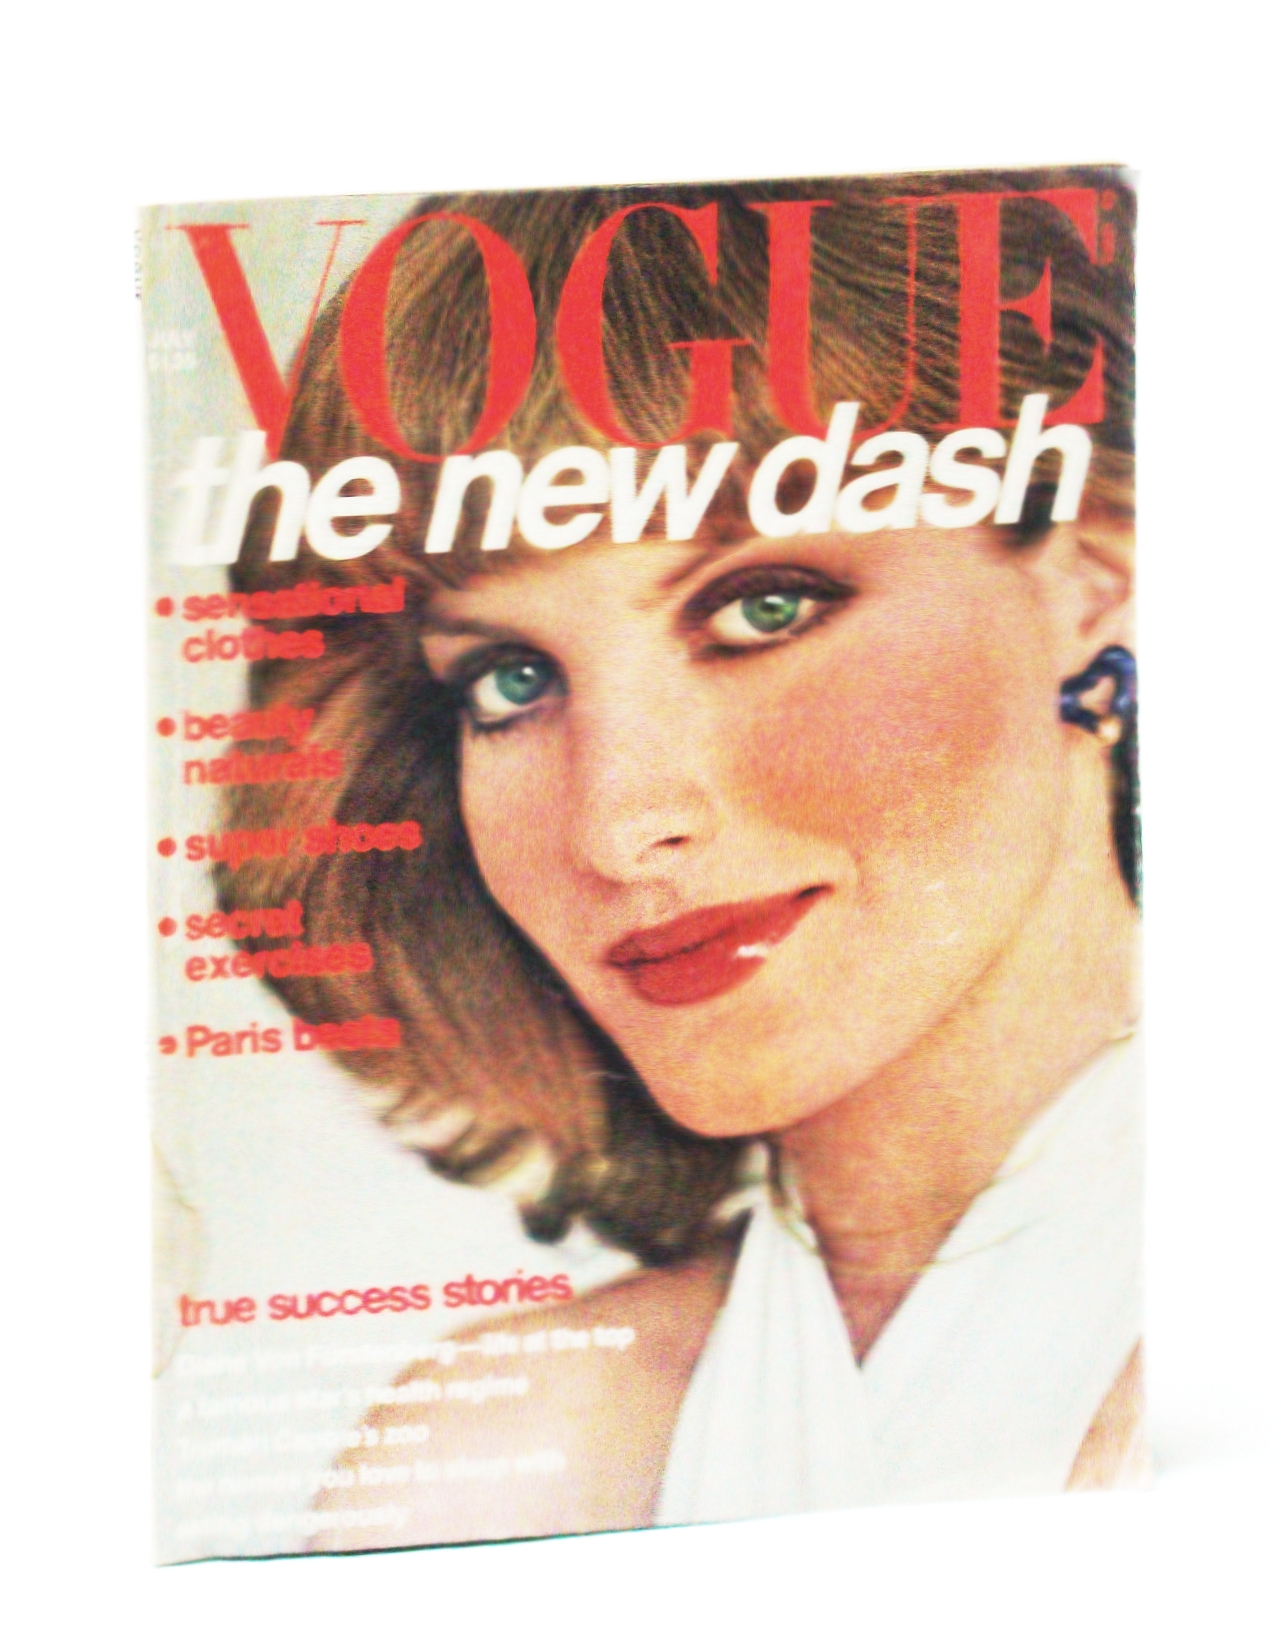 Image for Vogue (American) Magazine, July 1976 - True Success Stories